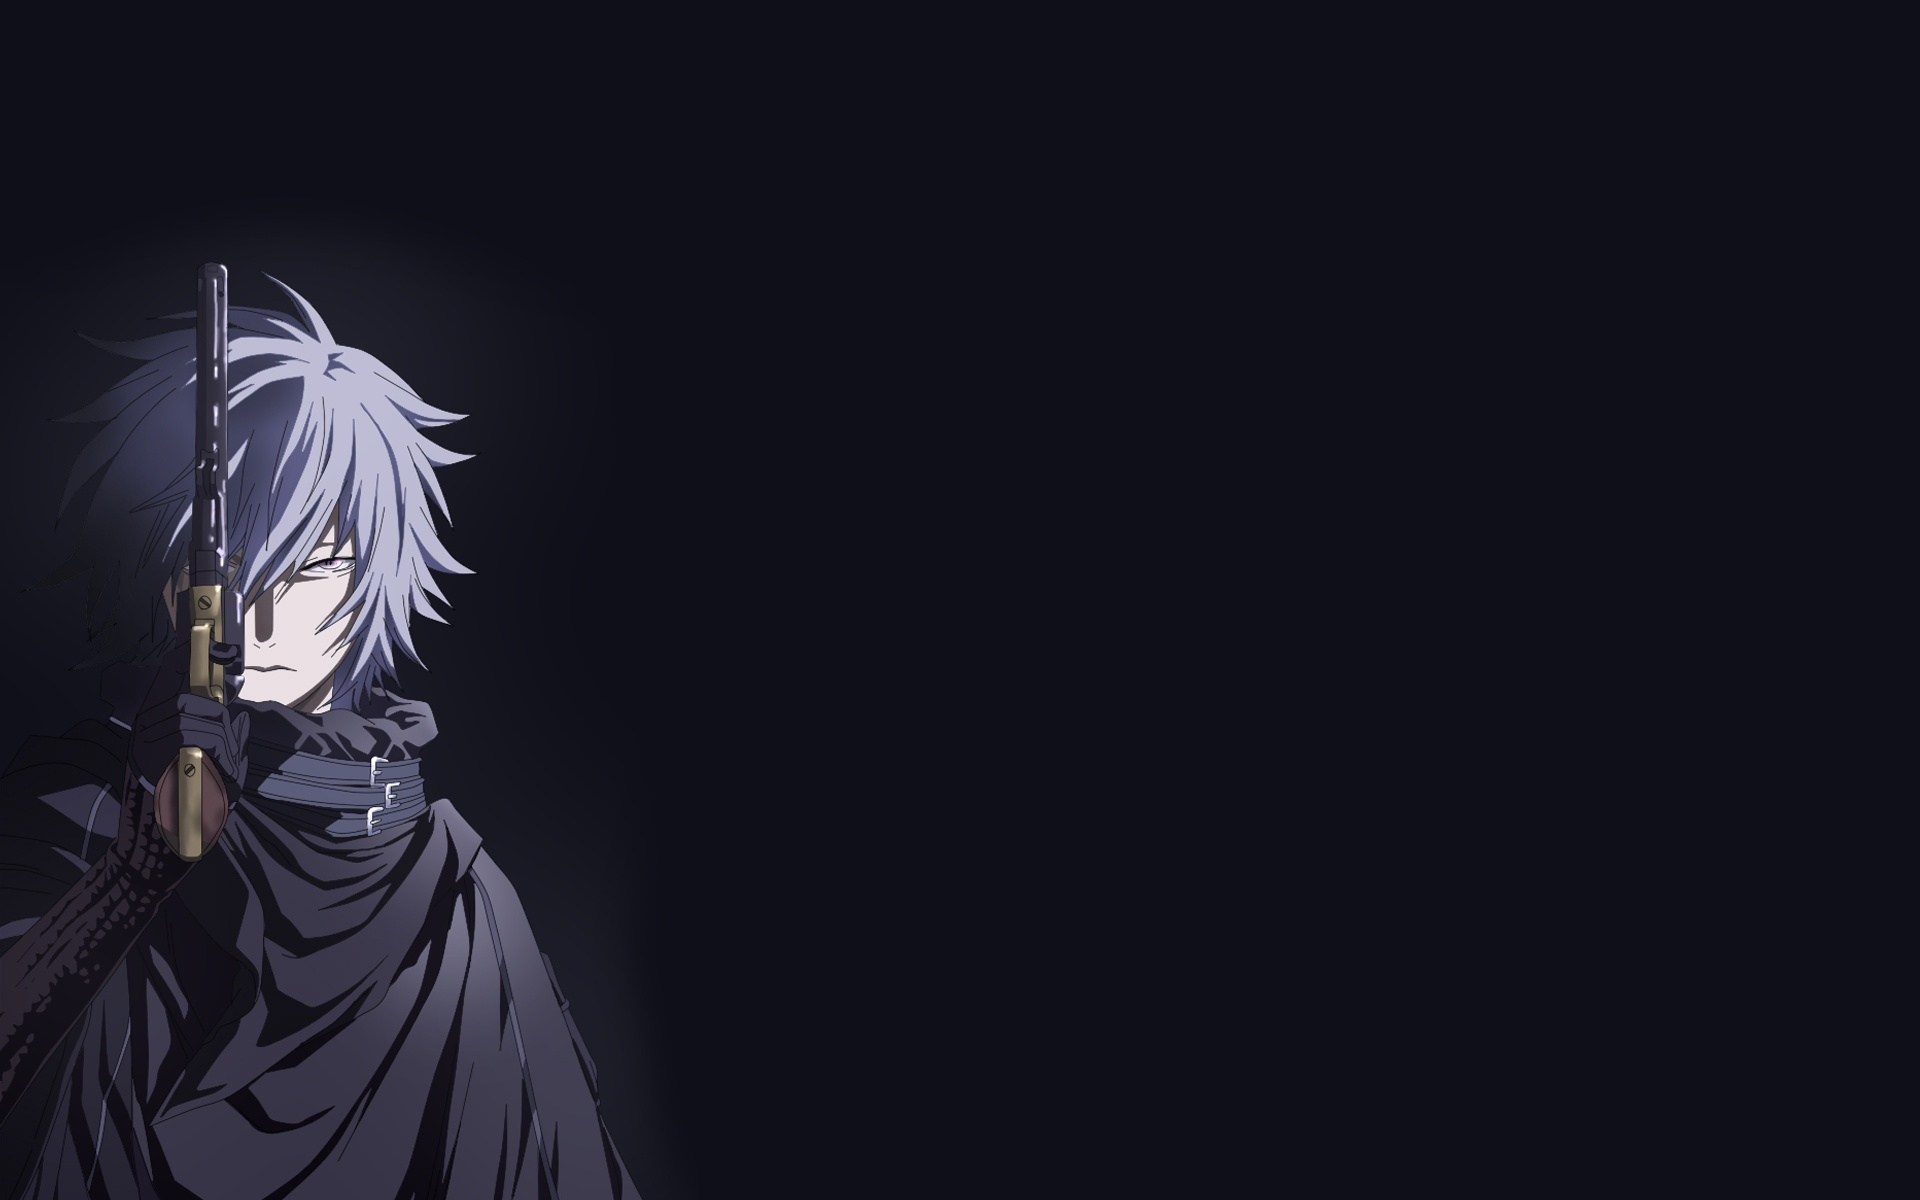 Collection of Anime Wallpaper Dark on HDWallpapers